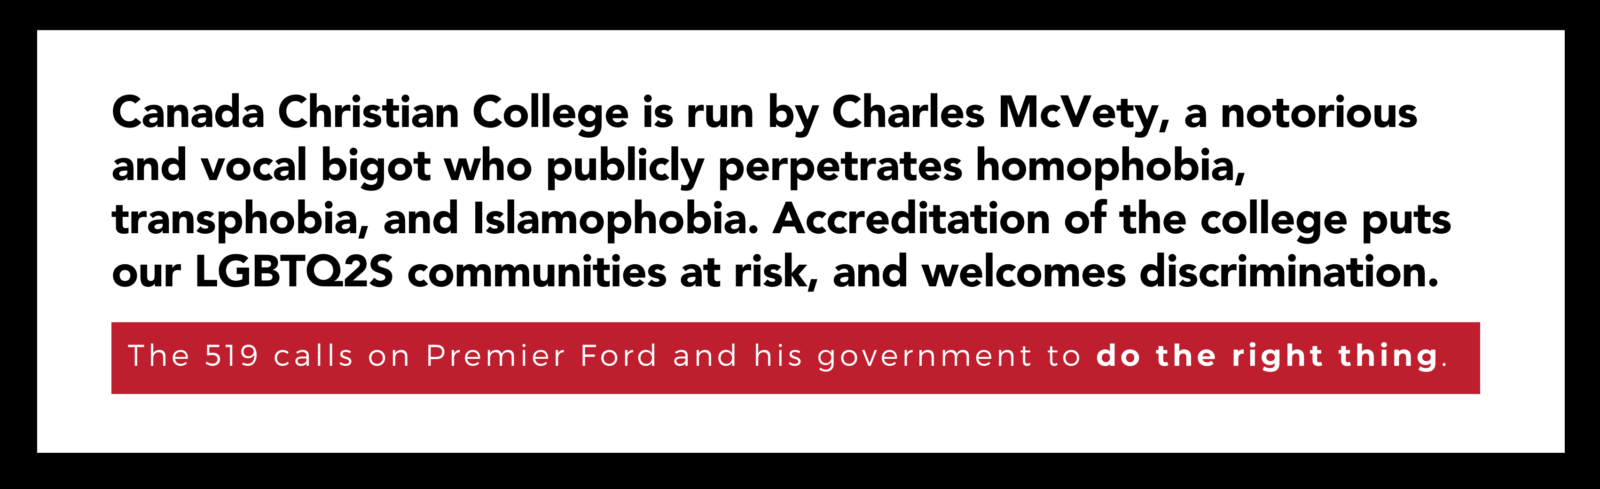 Canada Christian College is run by Charles McVety, a notorious and vocal bigot who publicly perpetrates homophobia, transphobia, and Islamophobia. Accreditation of the college puts our LGBTQ2S communities at risk, and welcomes discrimination.